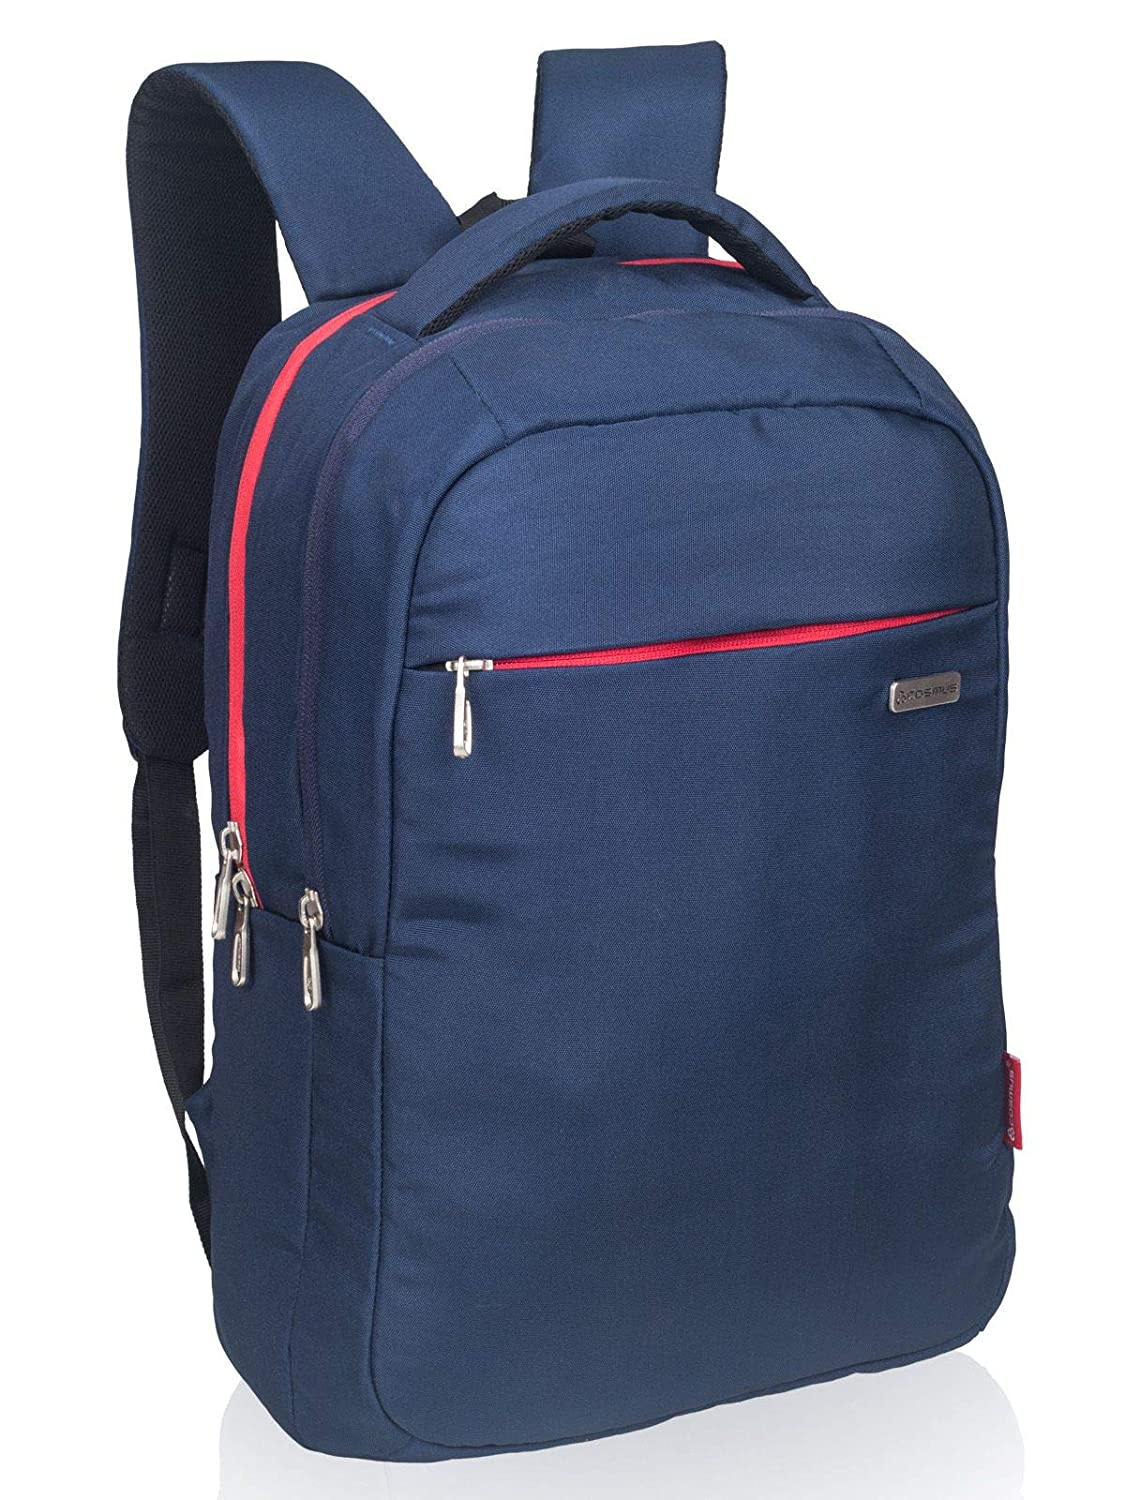 COSMUS Laptop Backpack $9.04 Coupon